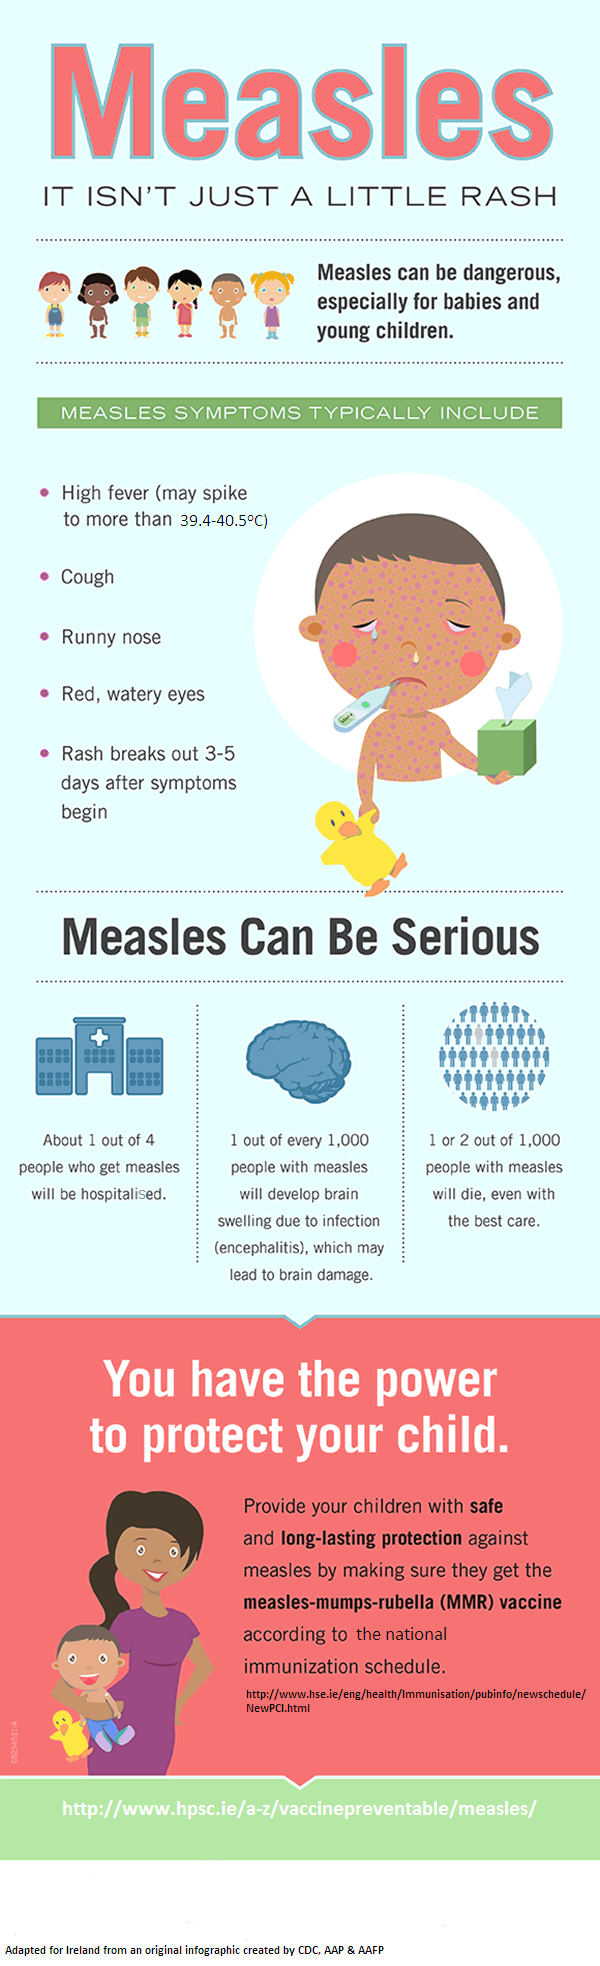 Information on measles